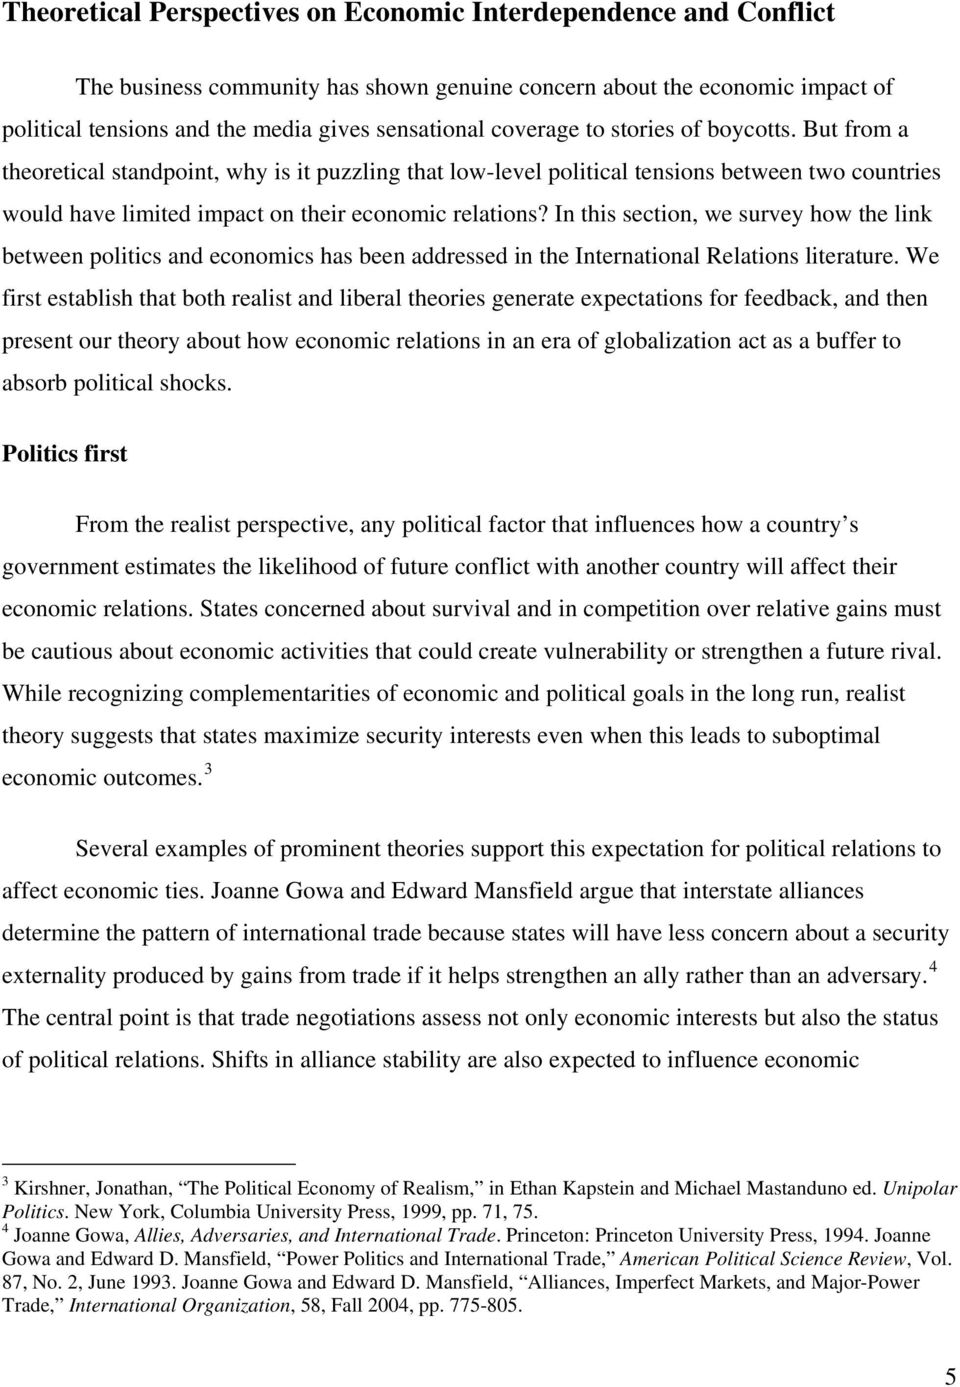 In this section, we survey how the link between politics and economics has been addressed in the International Relations literature.